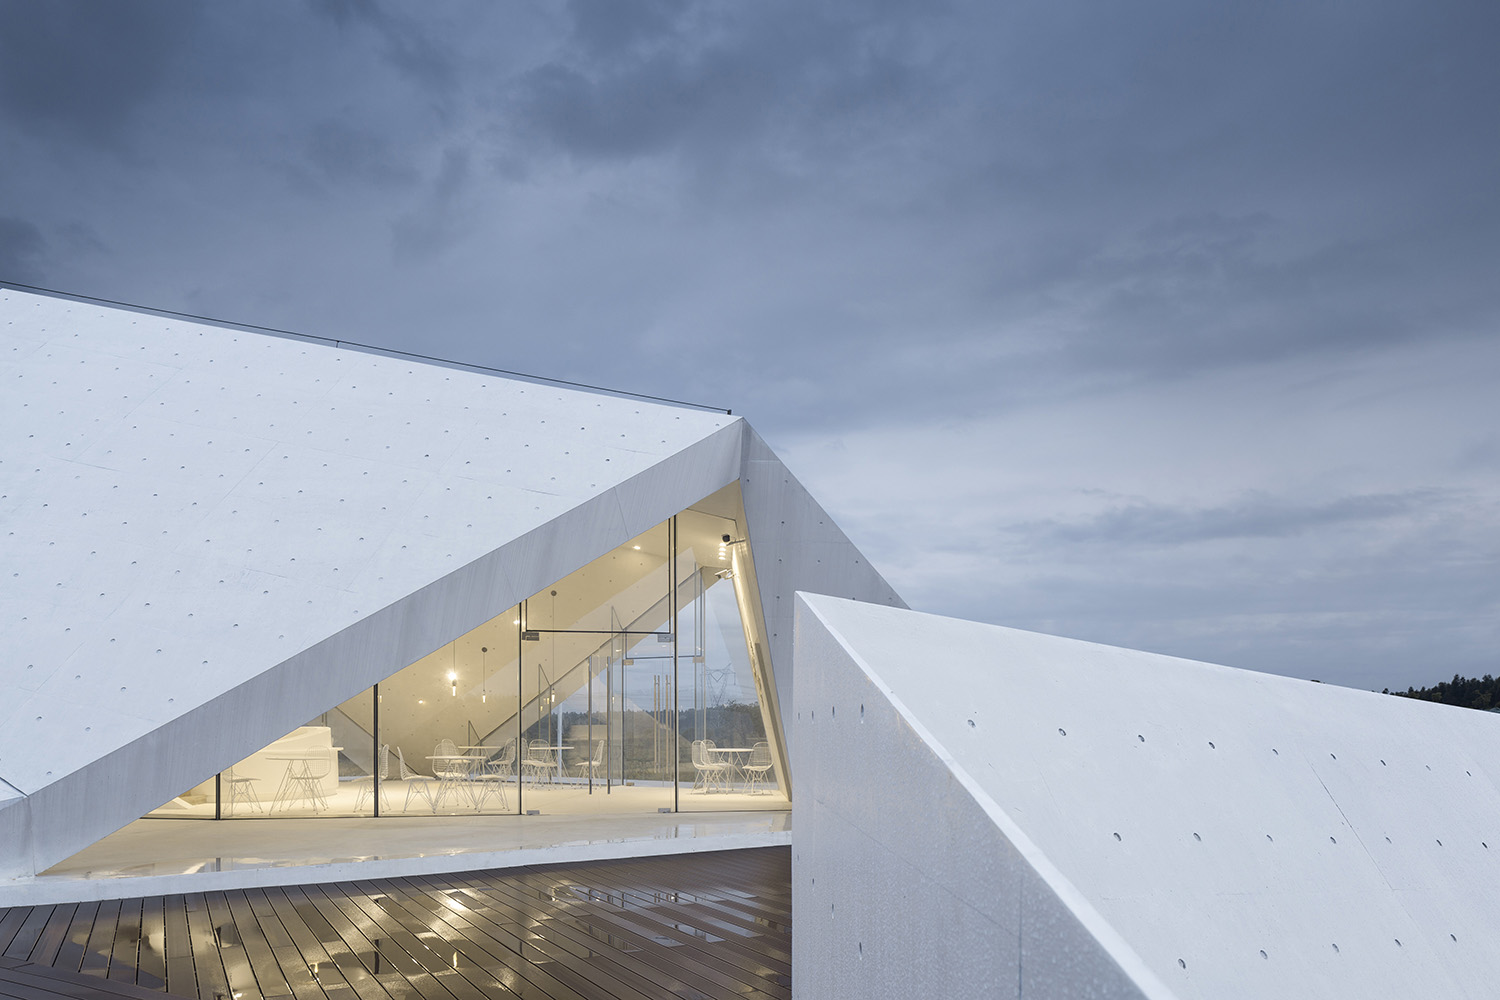 Cast with precision, the white concrete holds glass panels that ultimately enclose the space. Yao Li